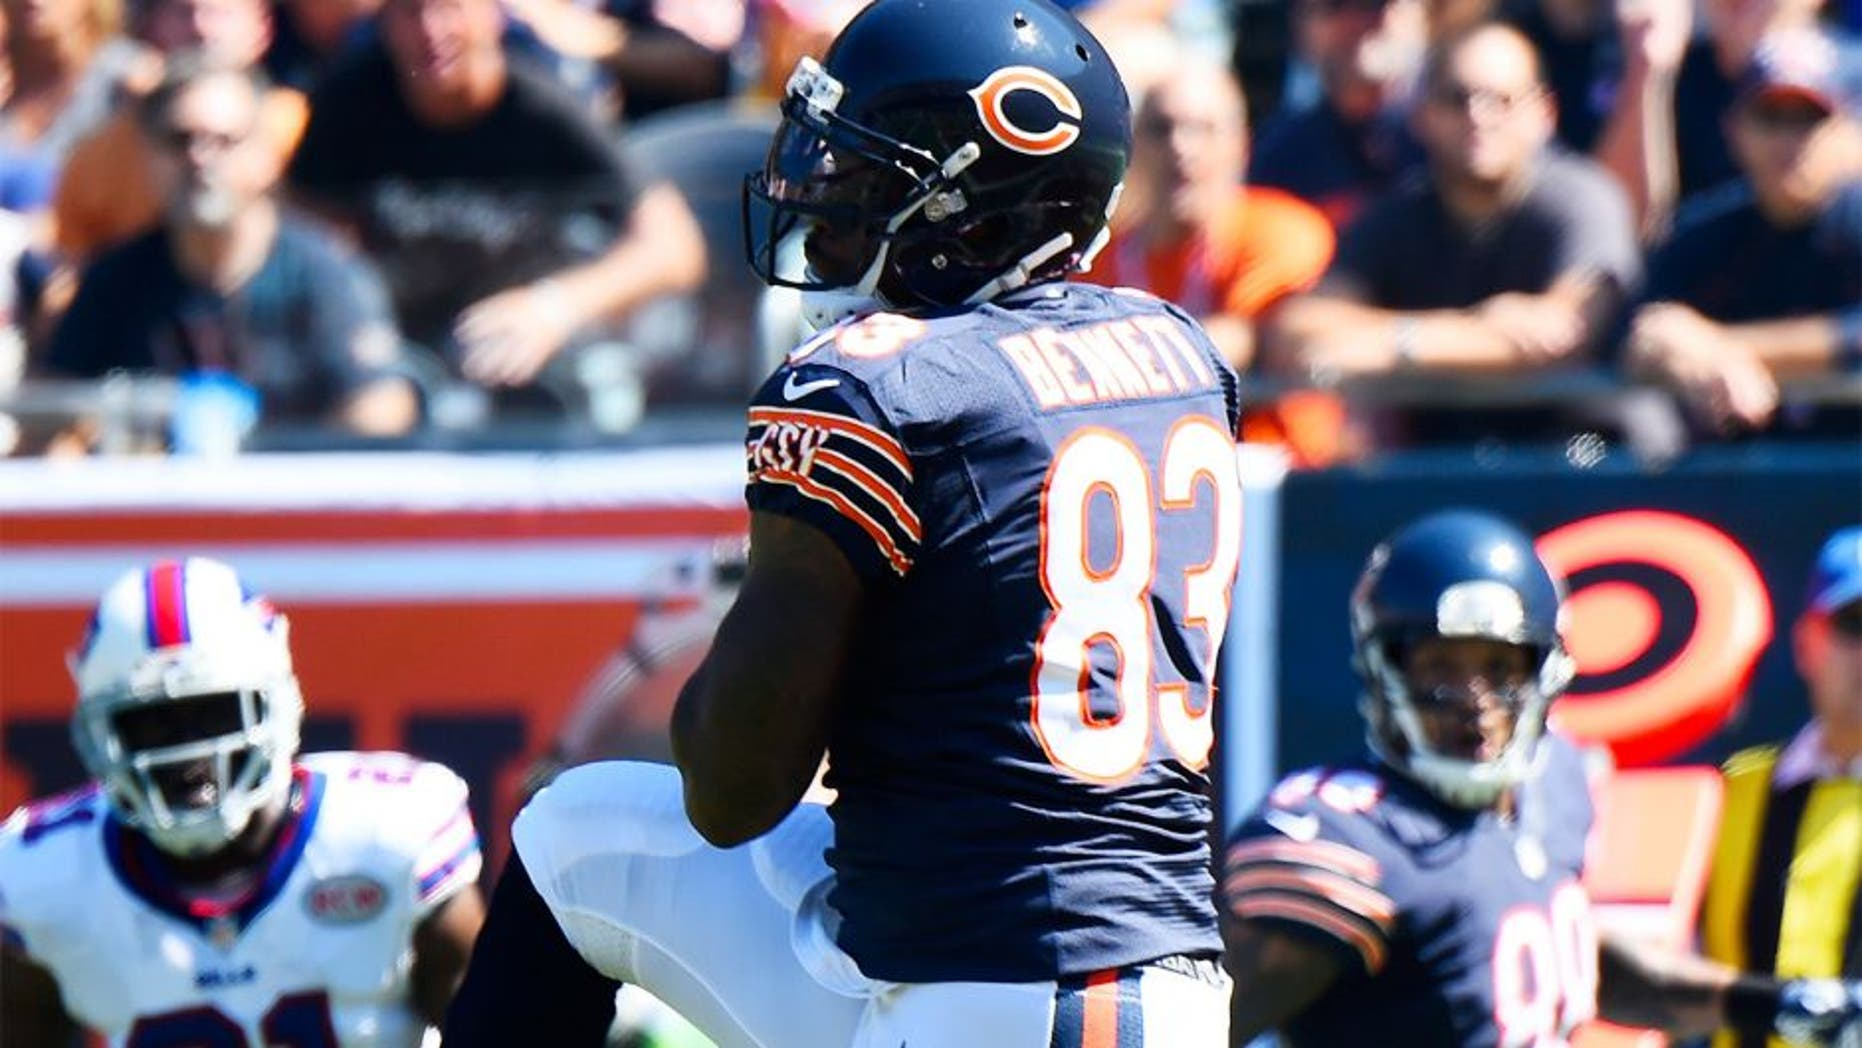 Sep 7, 2014; Chicago, IL, USA; Chicago Bears tight end Martellus Bennett (83) makes a touchdown catch against the Buffalo Bills during the first quarter at Soldier Field. Mandatory Credit: Mike DiNovo-USA TODAY Sports